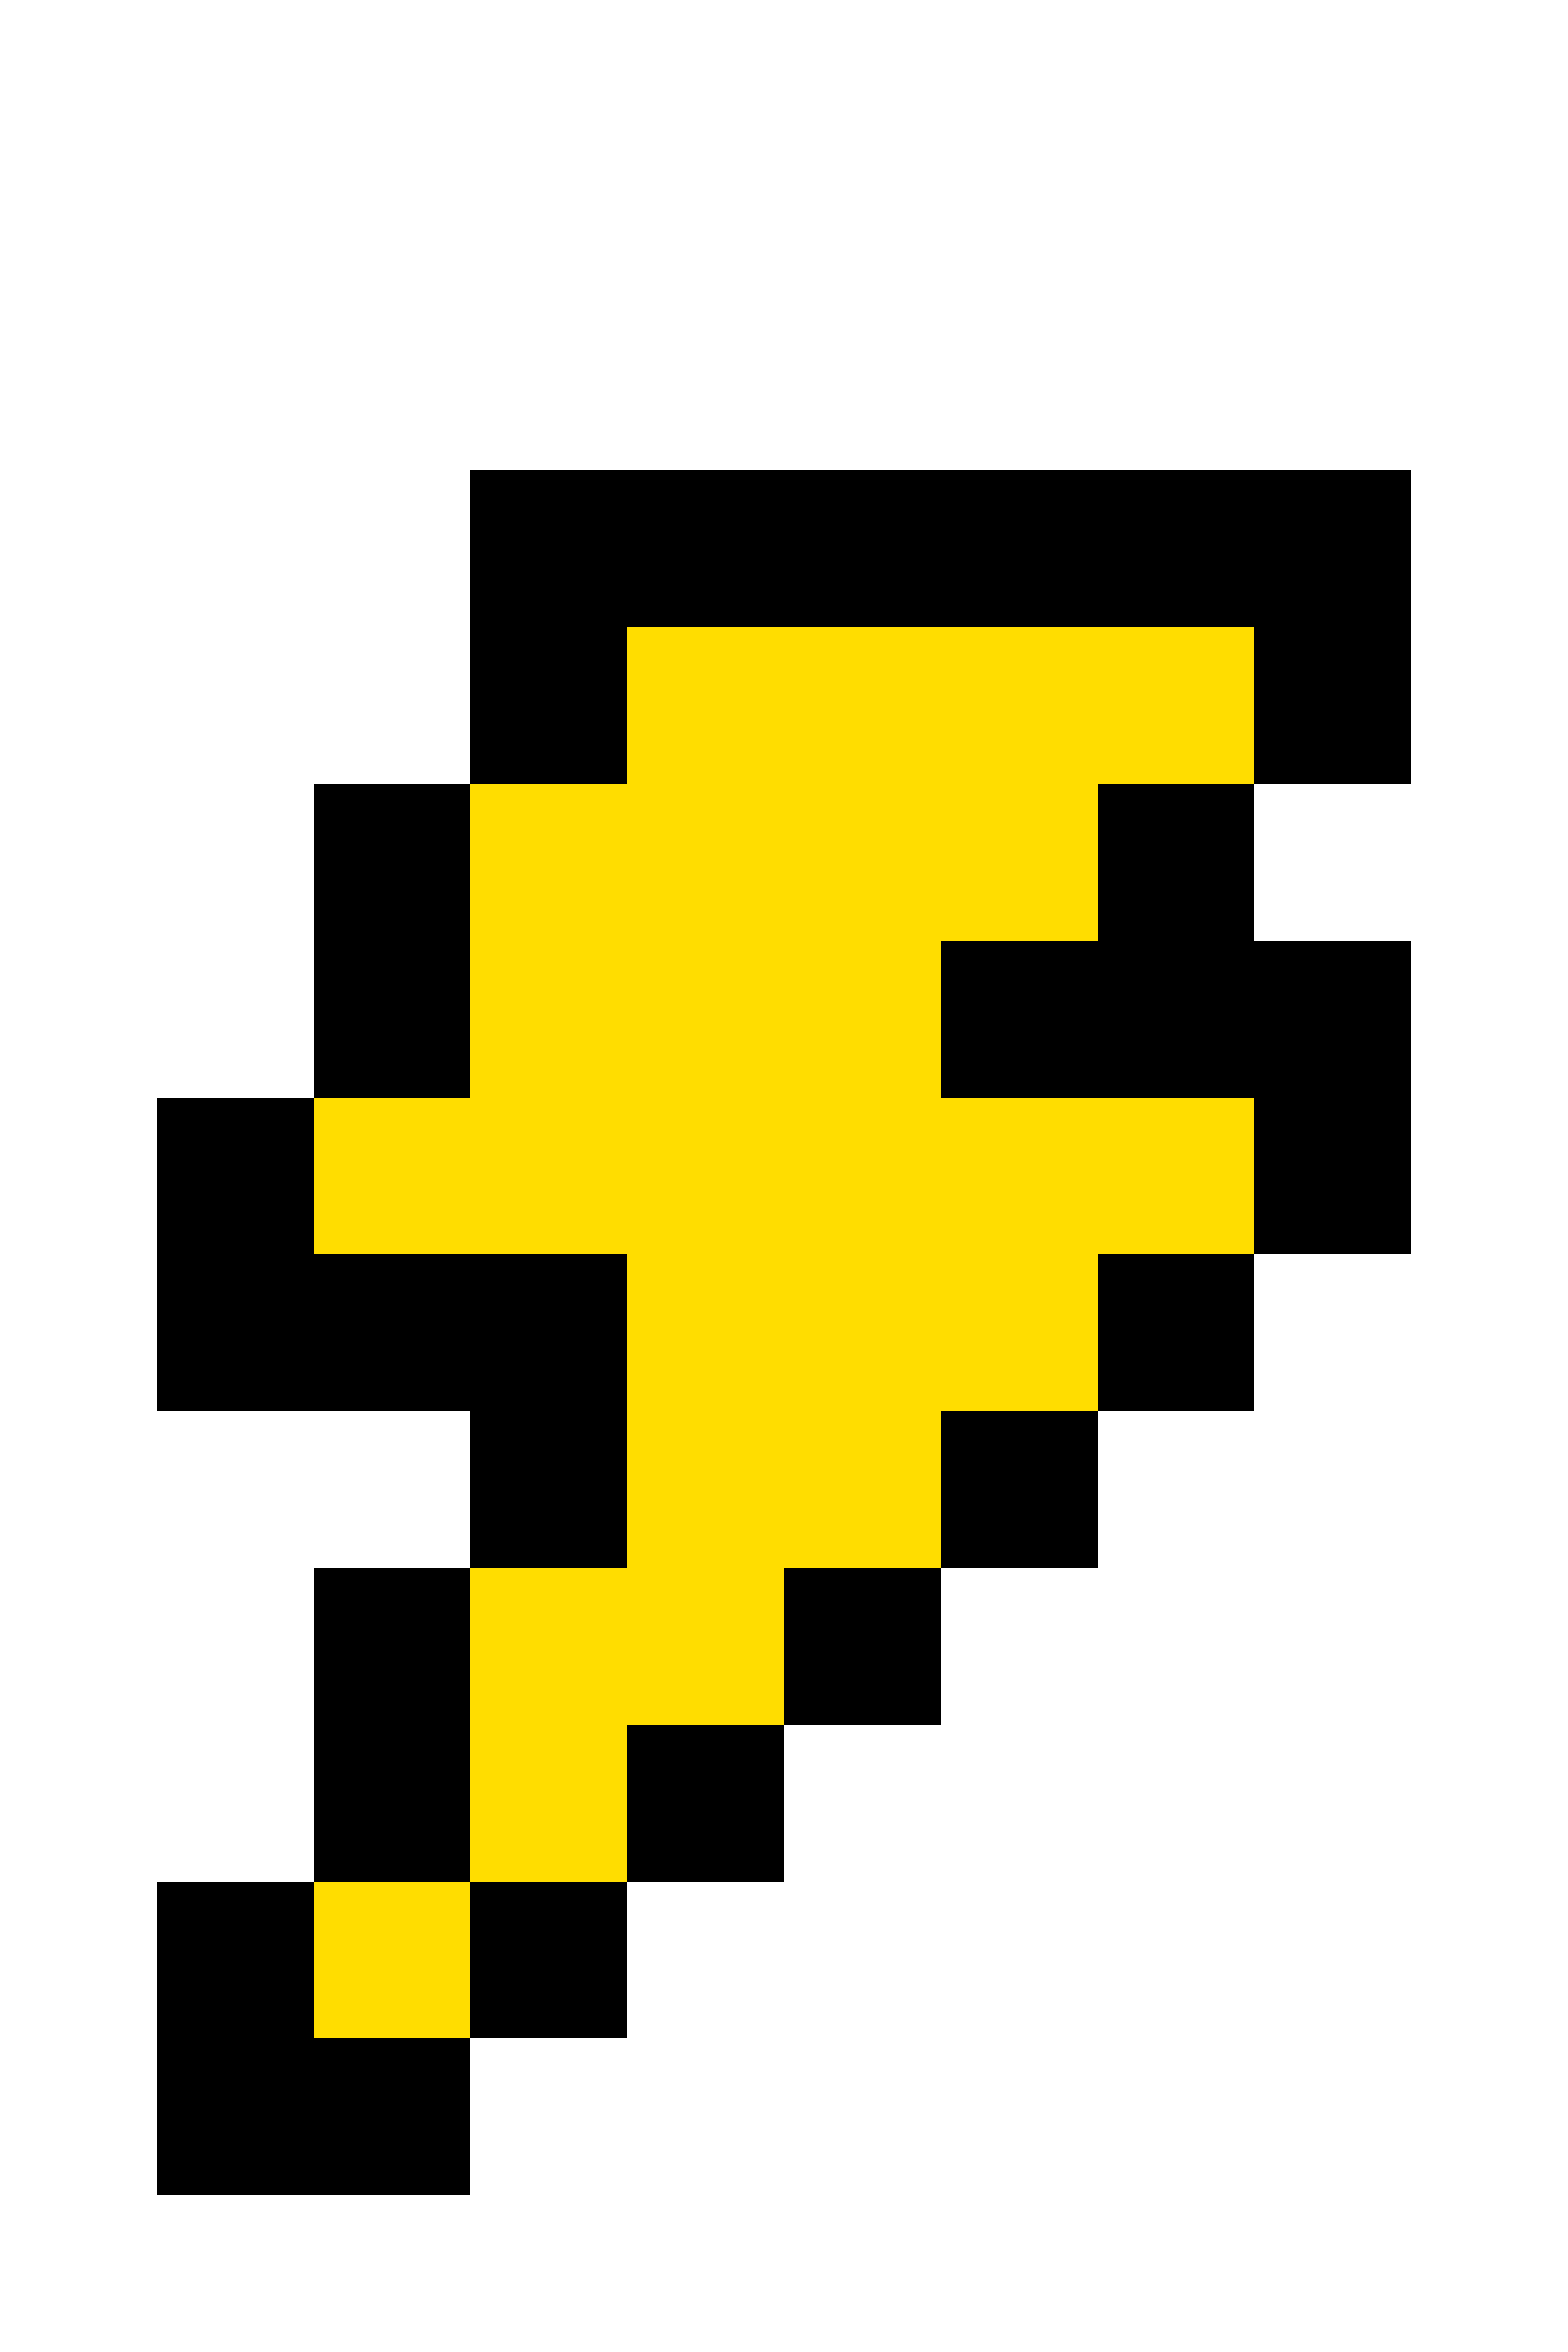 lightning pixel art maker